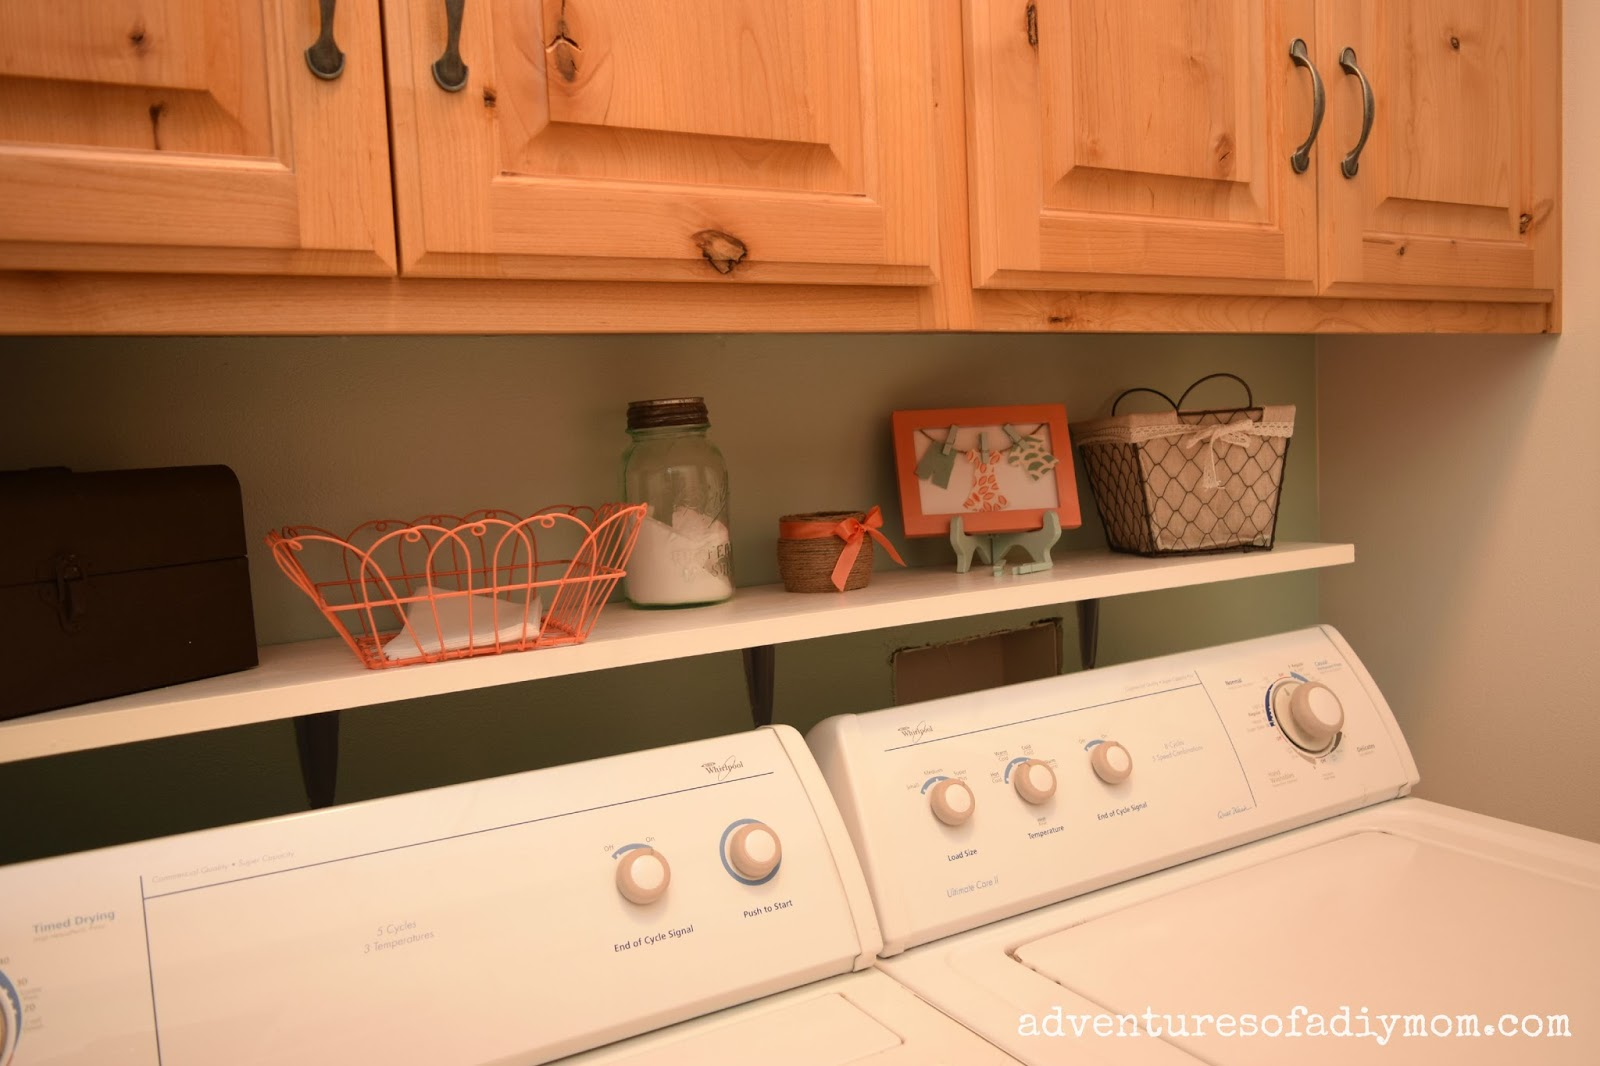 easy diy shelf over the washer laundry room makeover adventures of a diy mom. Black Bedroom Furniture Sets. Home Design Ideas